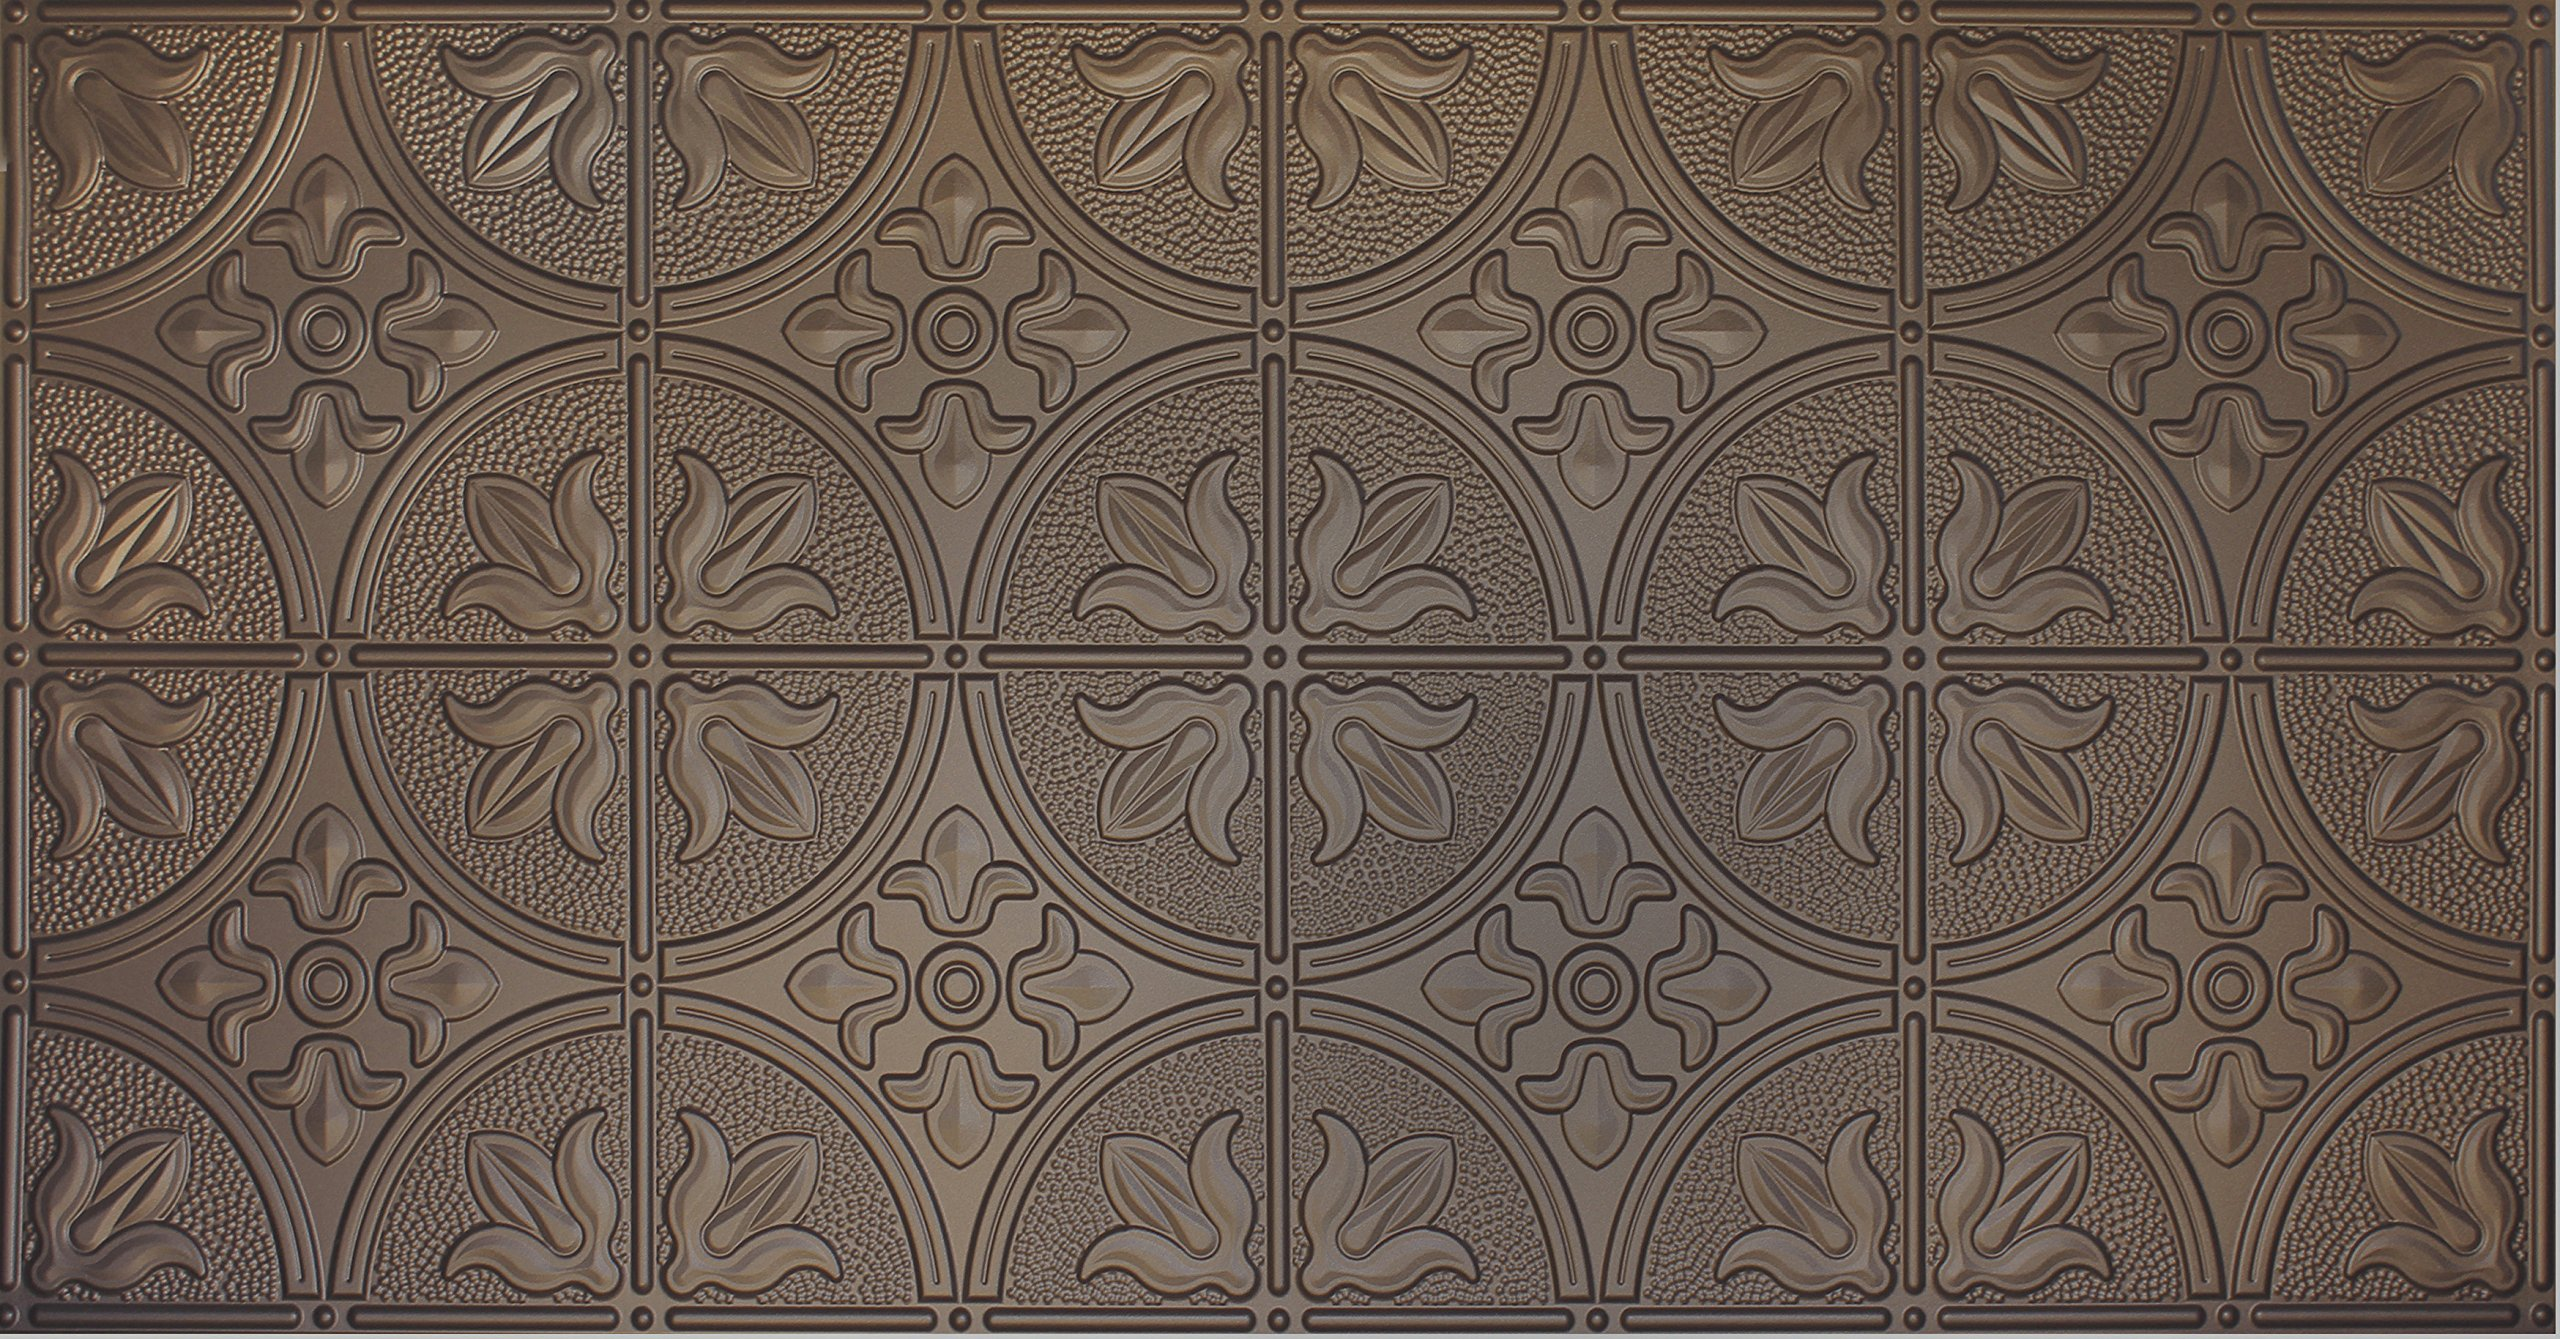 Global Specialty Products 309-03 Traditional Tin Style Panels For Glue-Up Installation, Metallic Bronze by Global Specialties